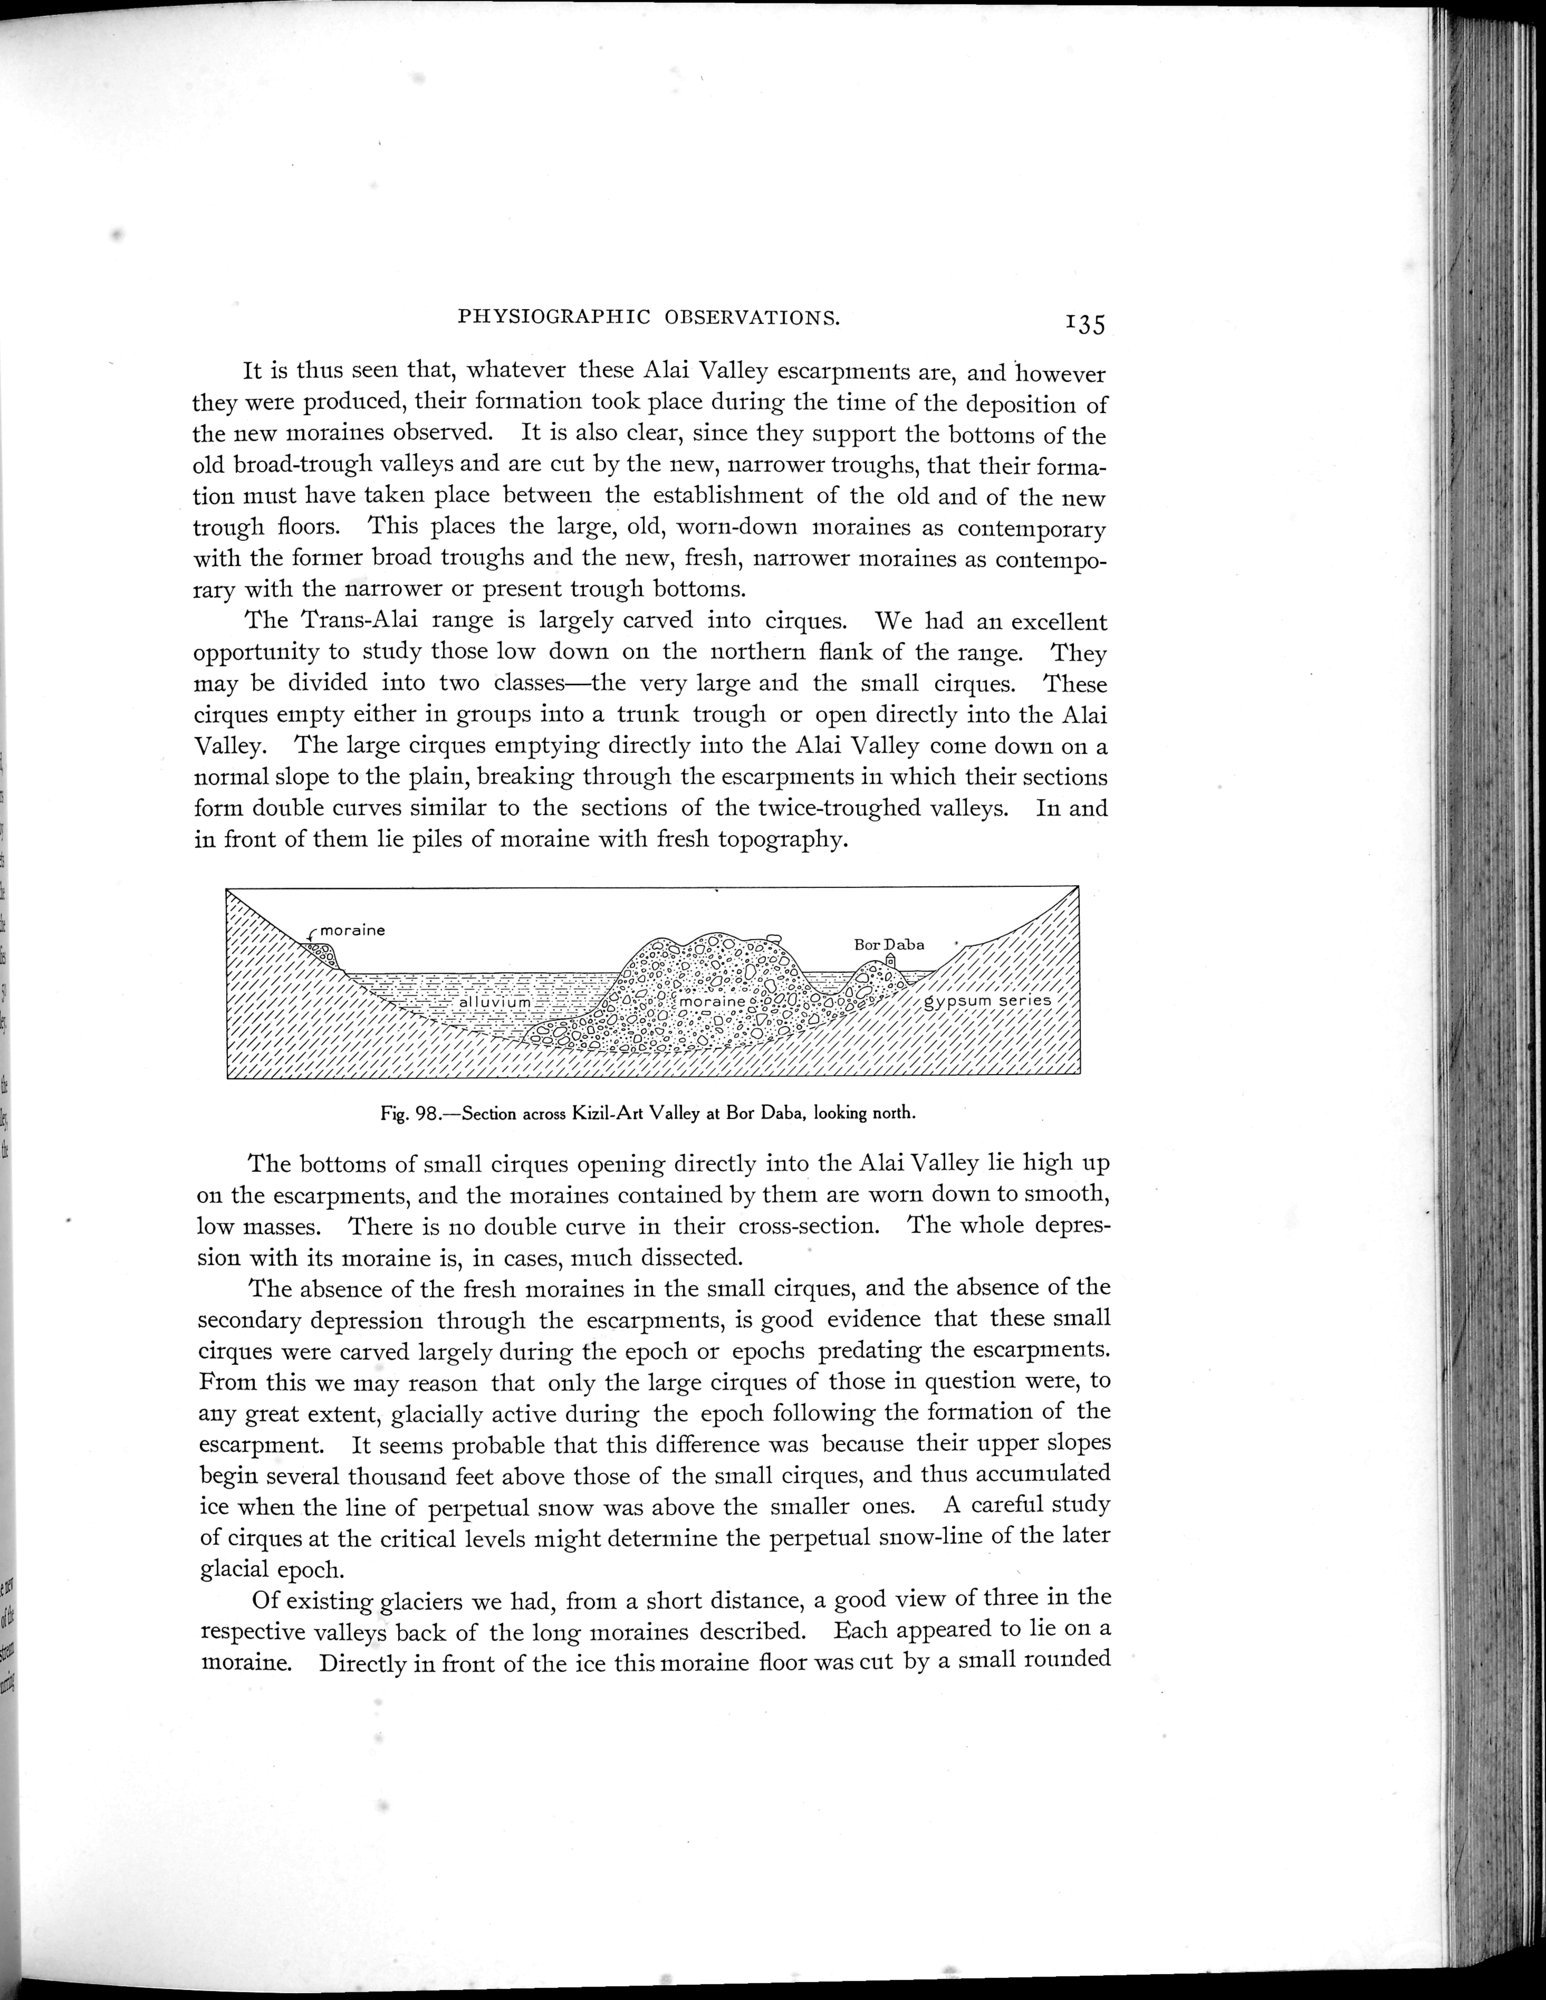 Explorations in Turkestan 1903 : vol.1 / Page 159 (Grayscale High Resolution Image)